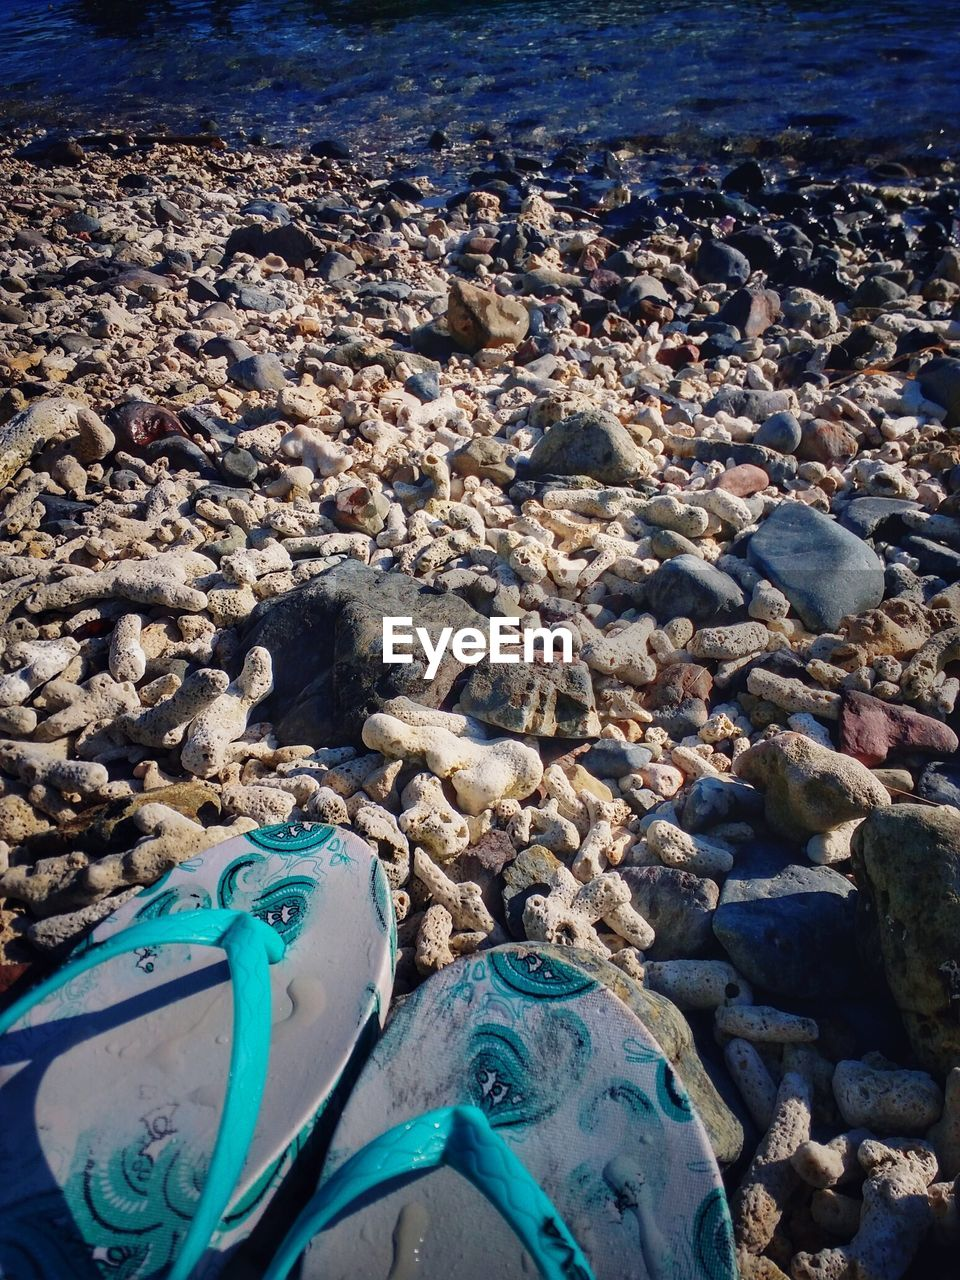 beach, water, shore, pebble, day, nature, outdoors, sea, no people, high angle view, pebble beach, sand, blue, sunlight, beauty in nature, close-up